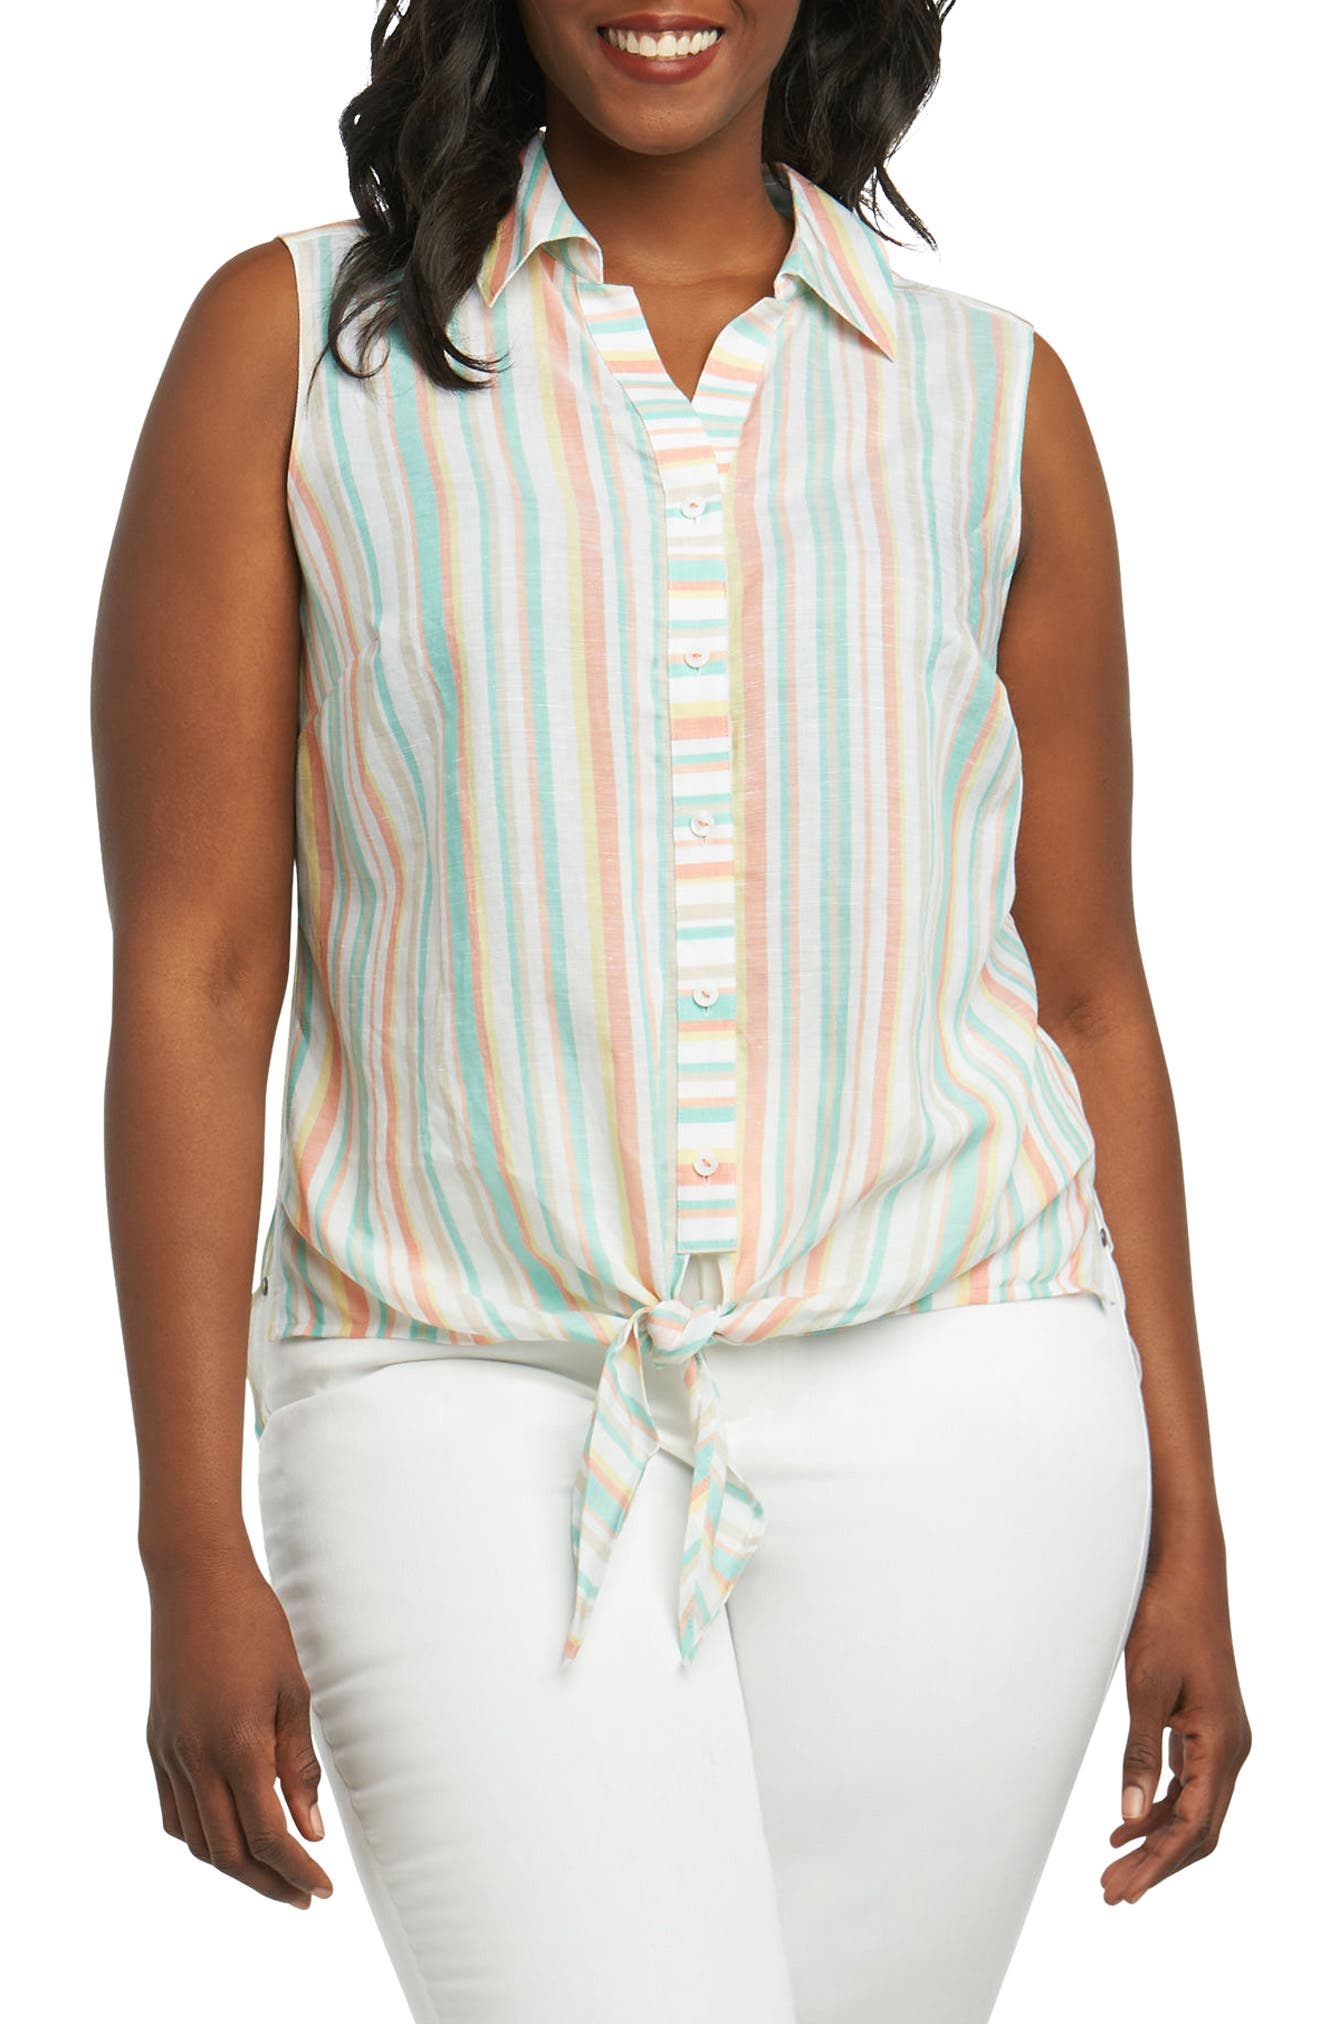 Alternate Image 1 Selected - Foxcroft Lila Cabana Stripe Tie Hem Shirt (Plus Size)